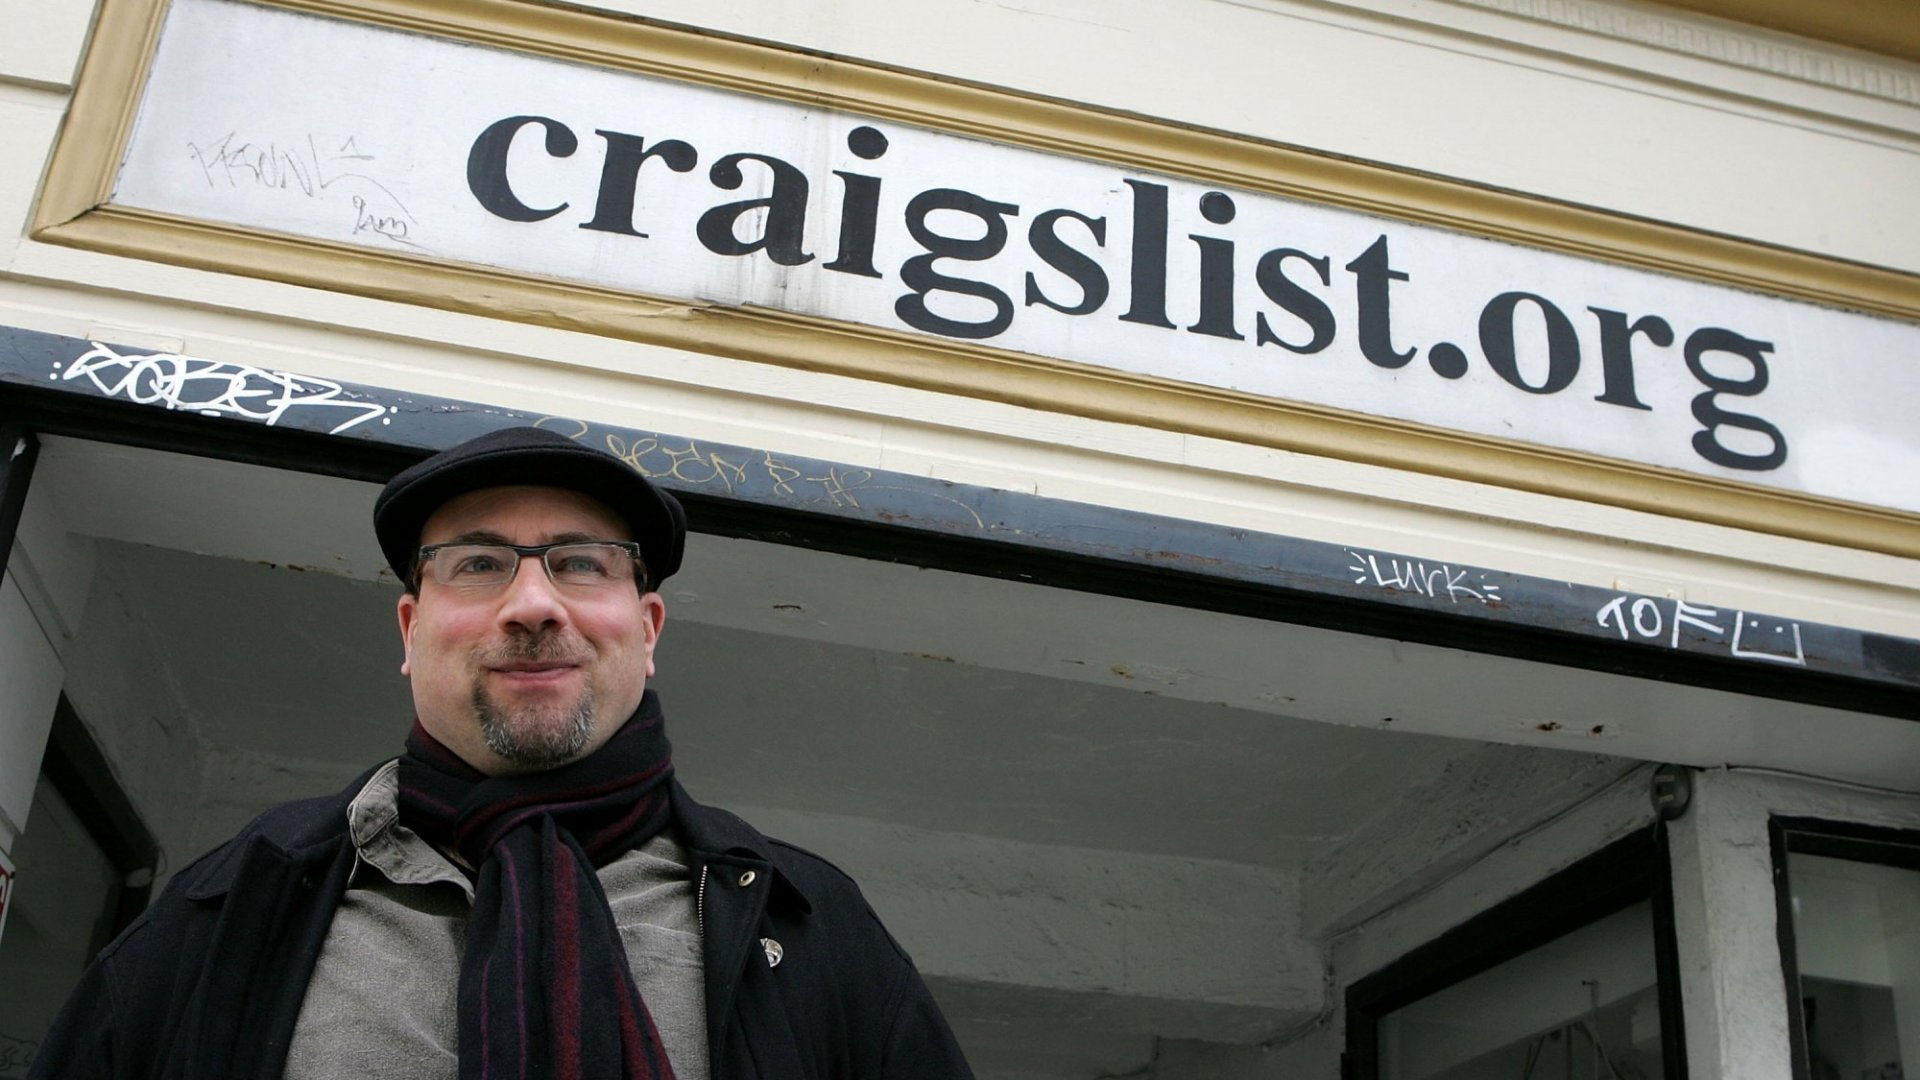 What the Founder of Craigslist Learned When He Made Customer Service His First Priority